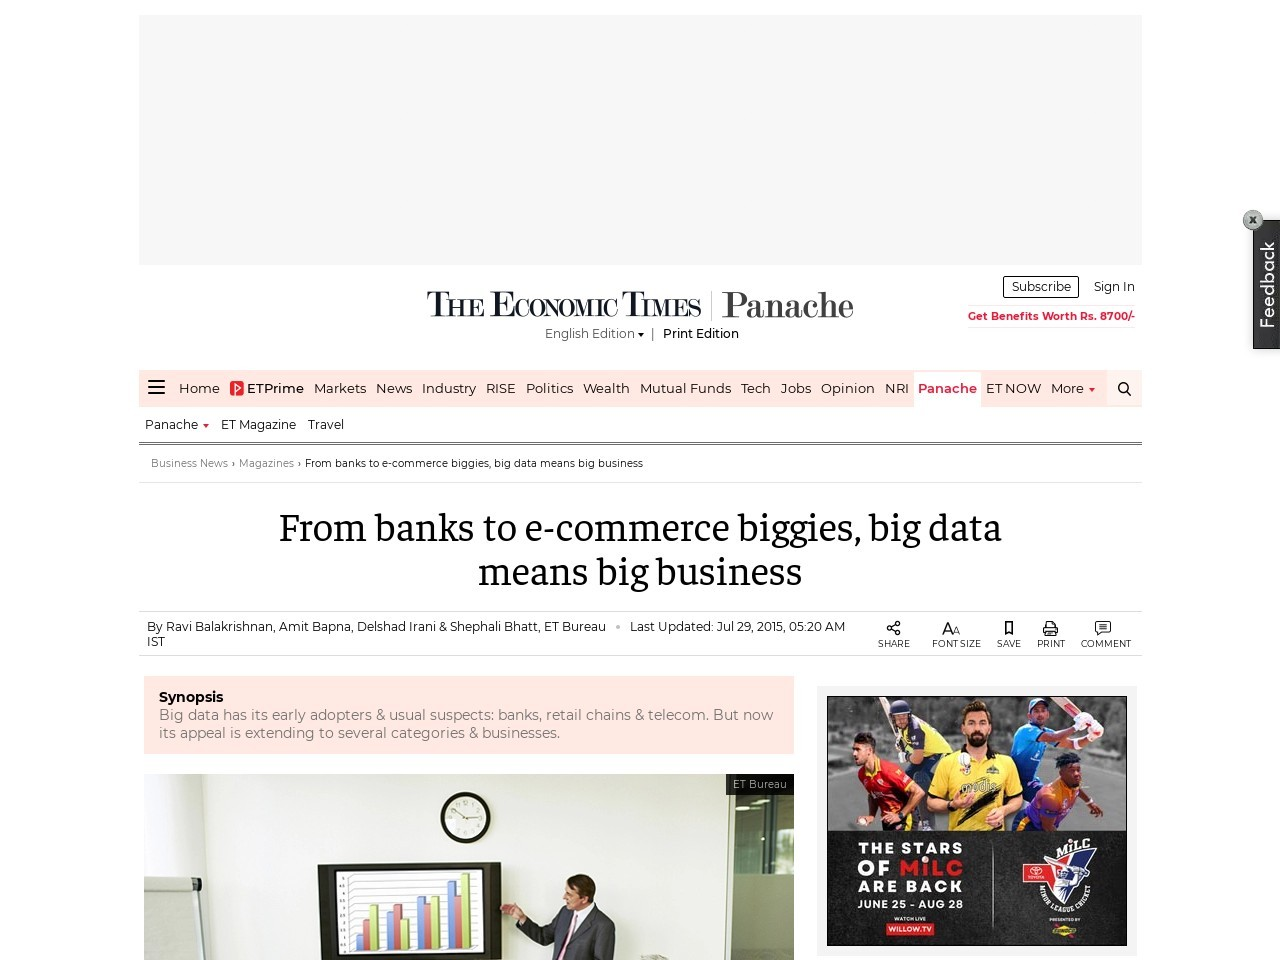 From banks to e-commerce biggies, big data means big business